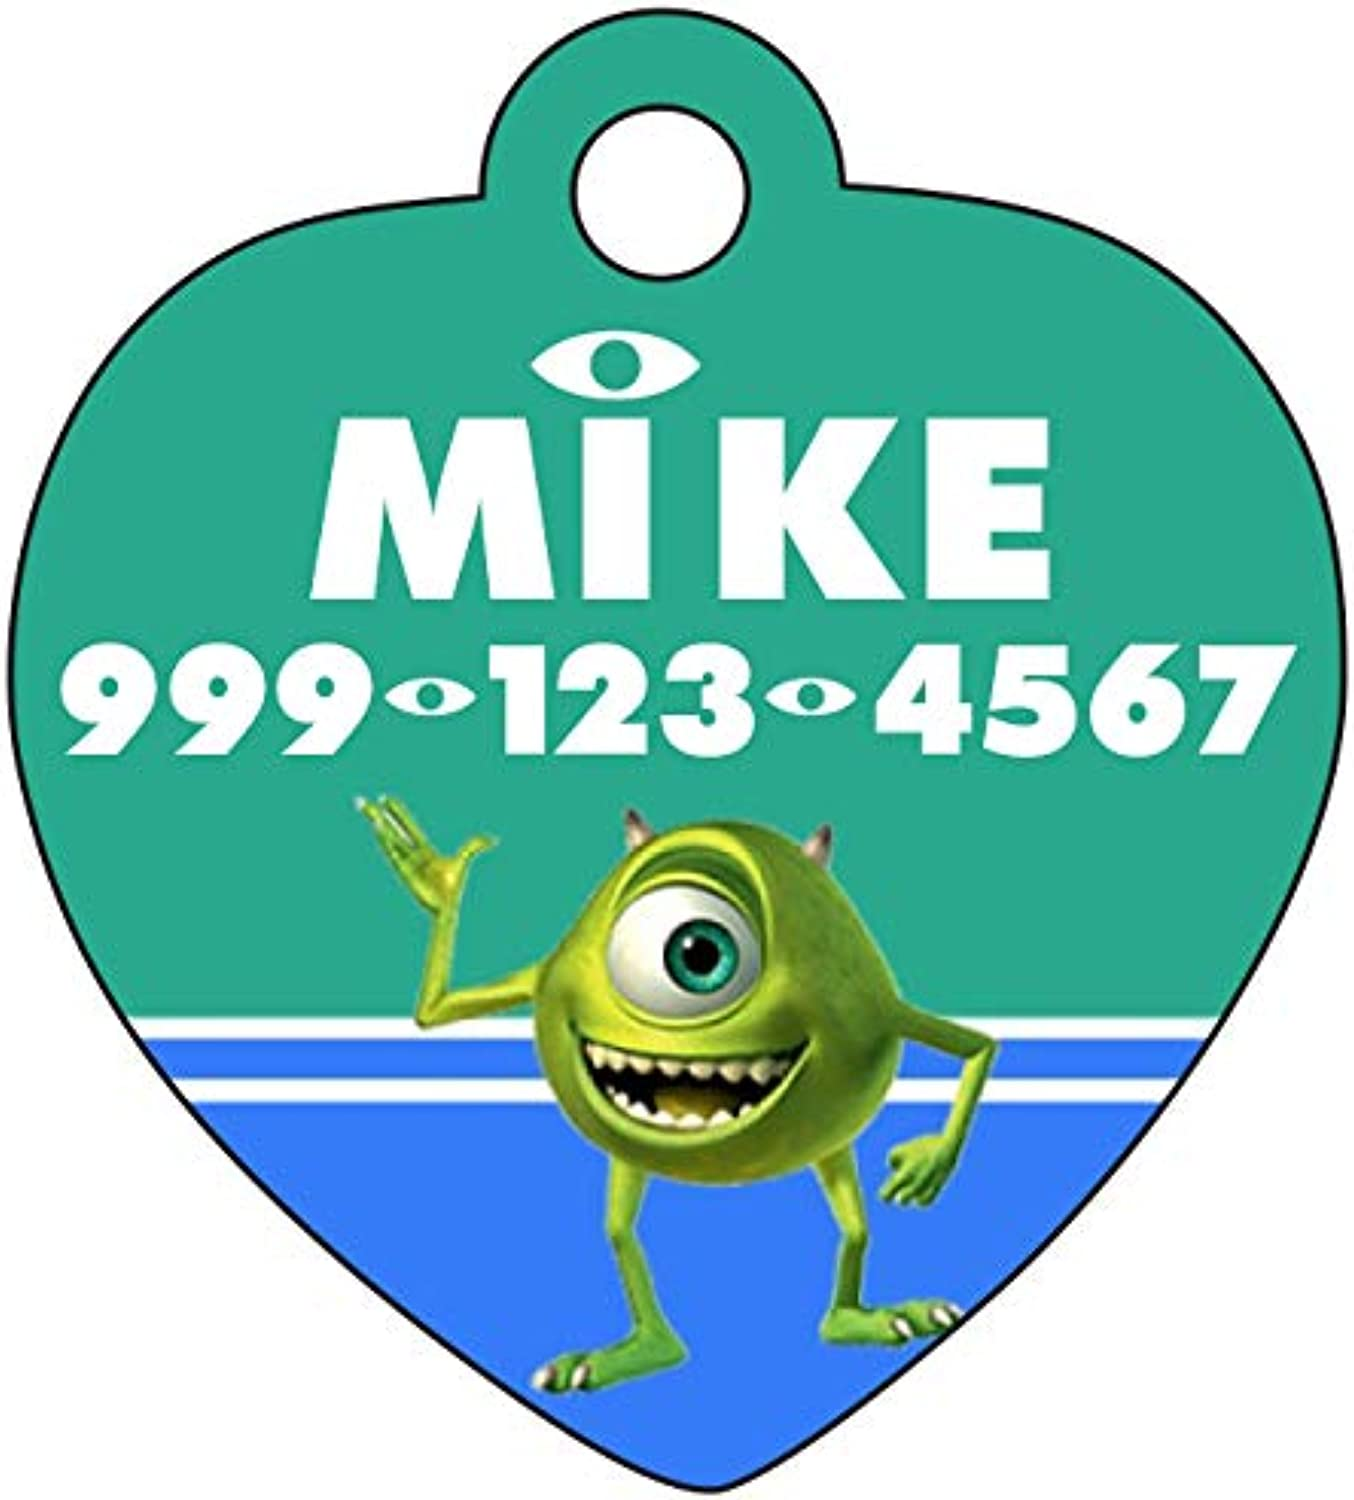 Disney Monsters Inc Mike Wazowski Pet Id Tag for Dogs & Cats Personalized w  Name & Number